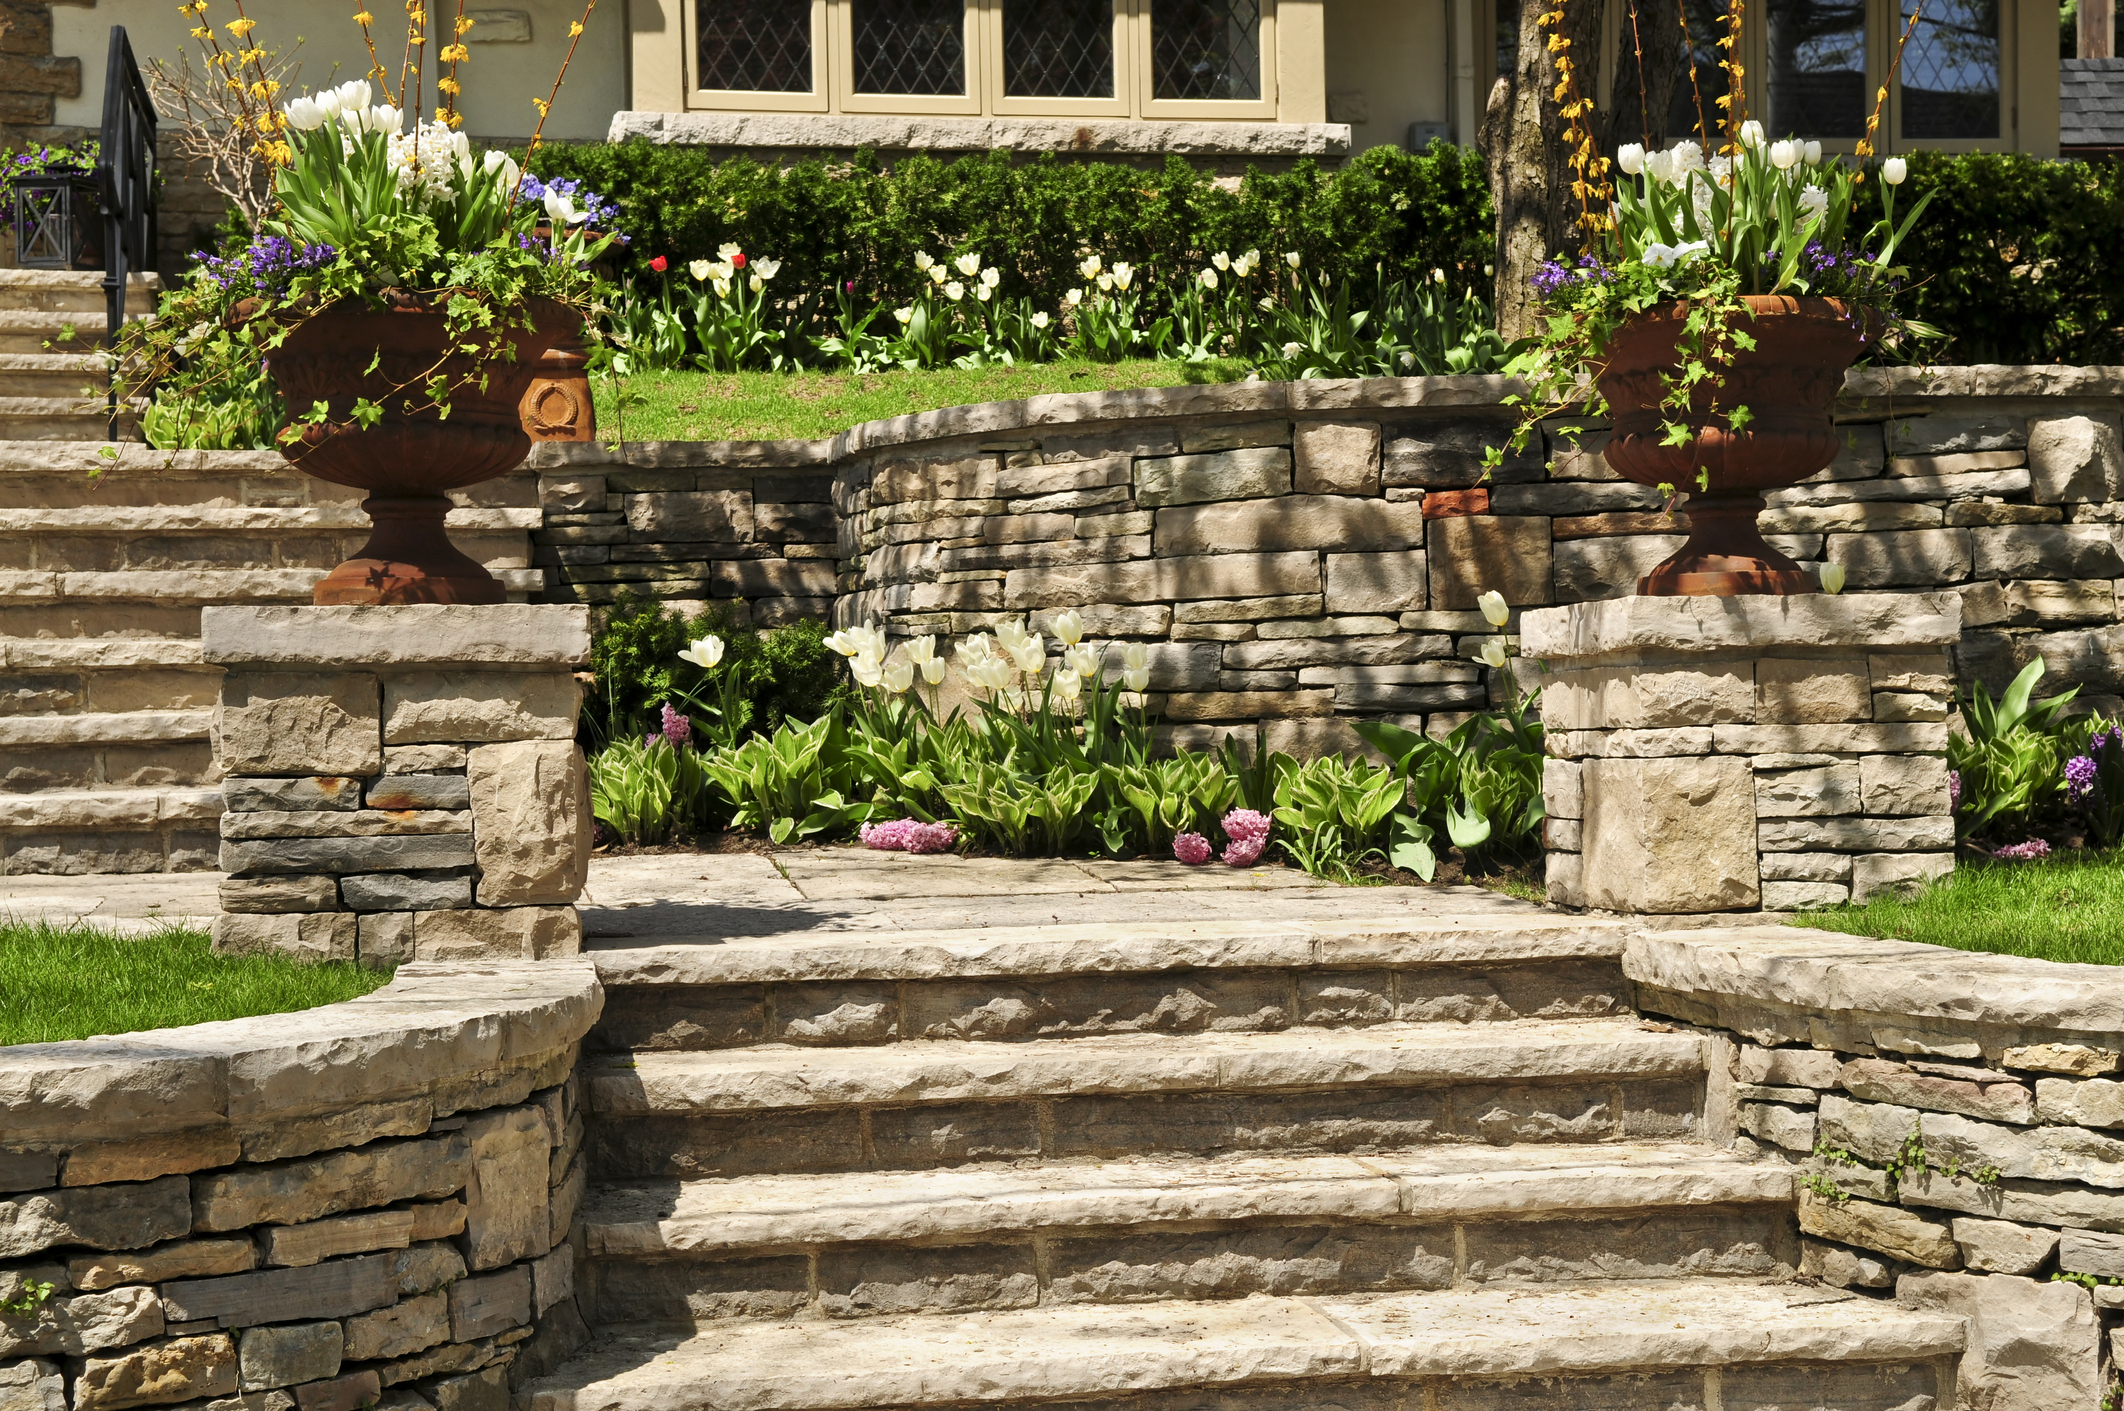 Stone Retaining Wall and Stairs